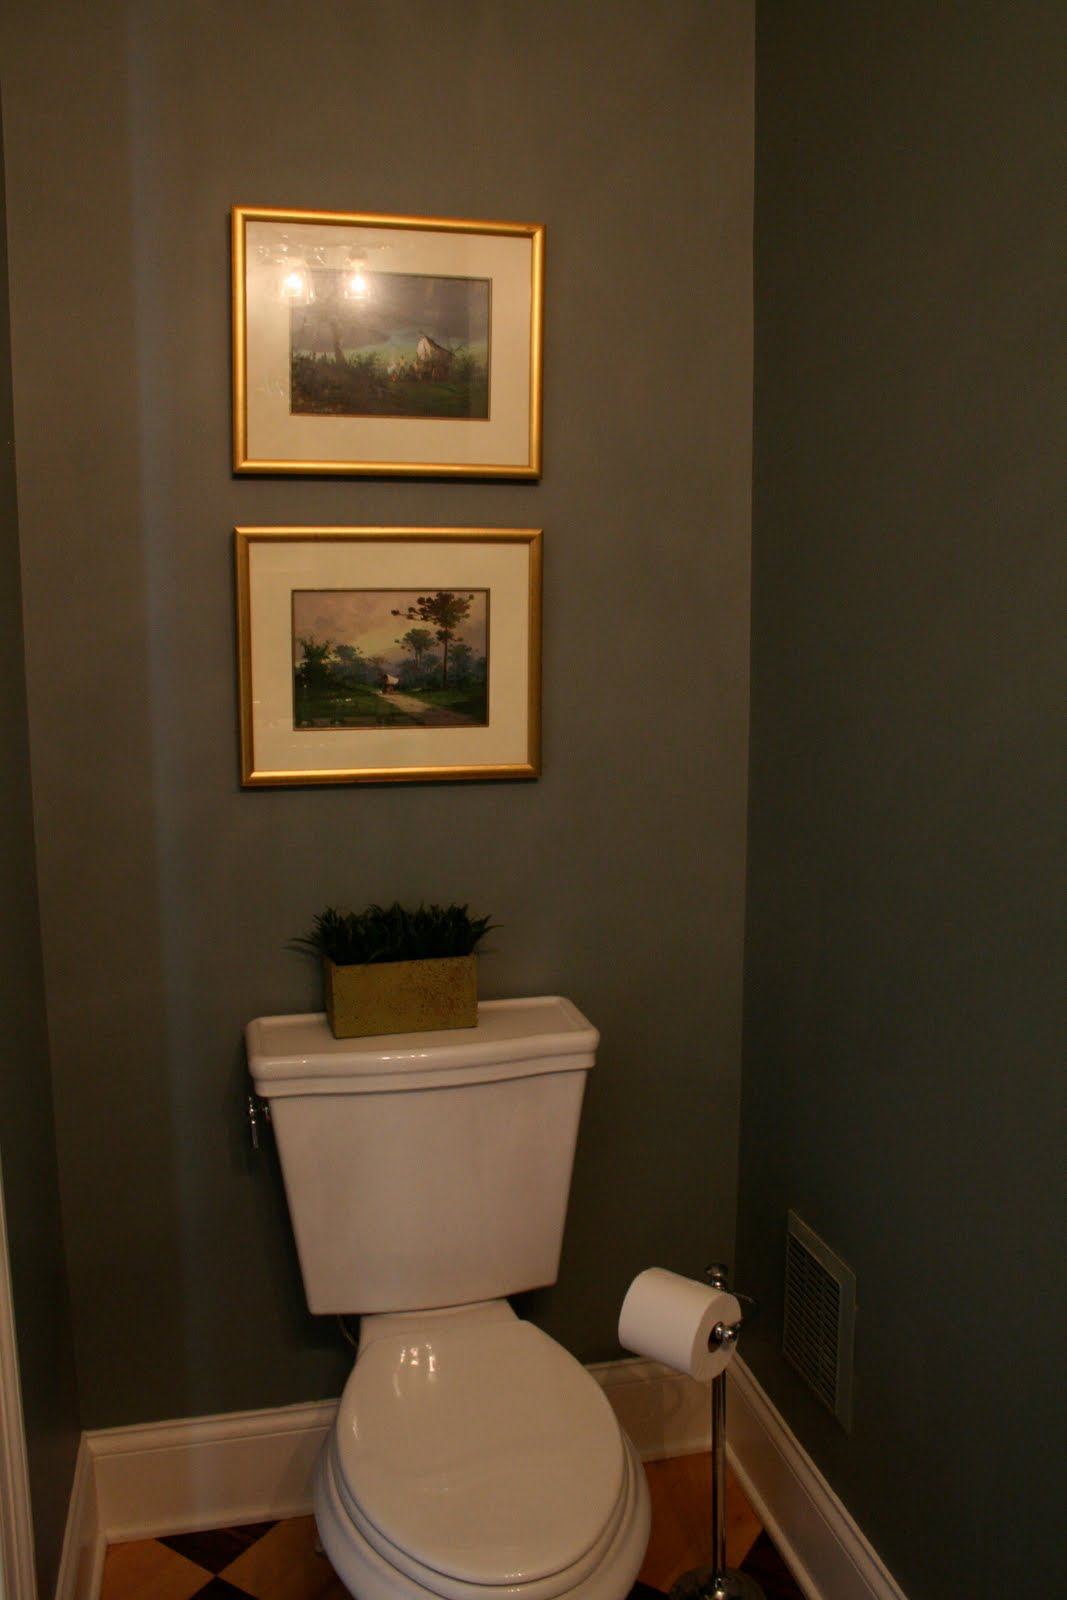 Design dump house 5 powder room before after - Small powder room decorating ideas ...